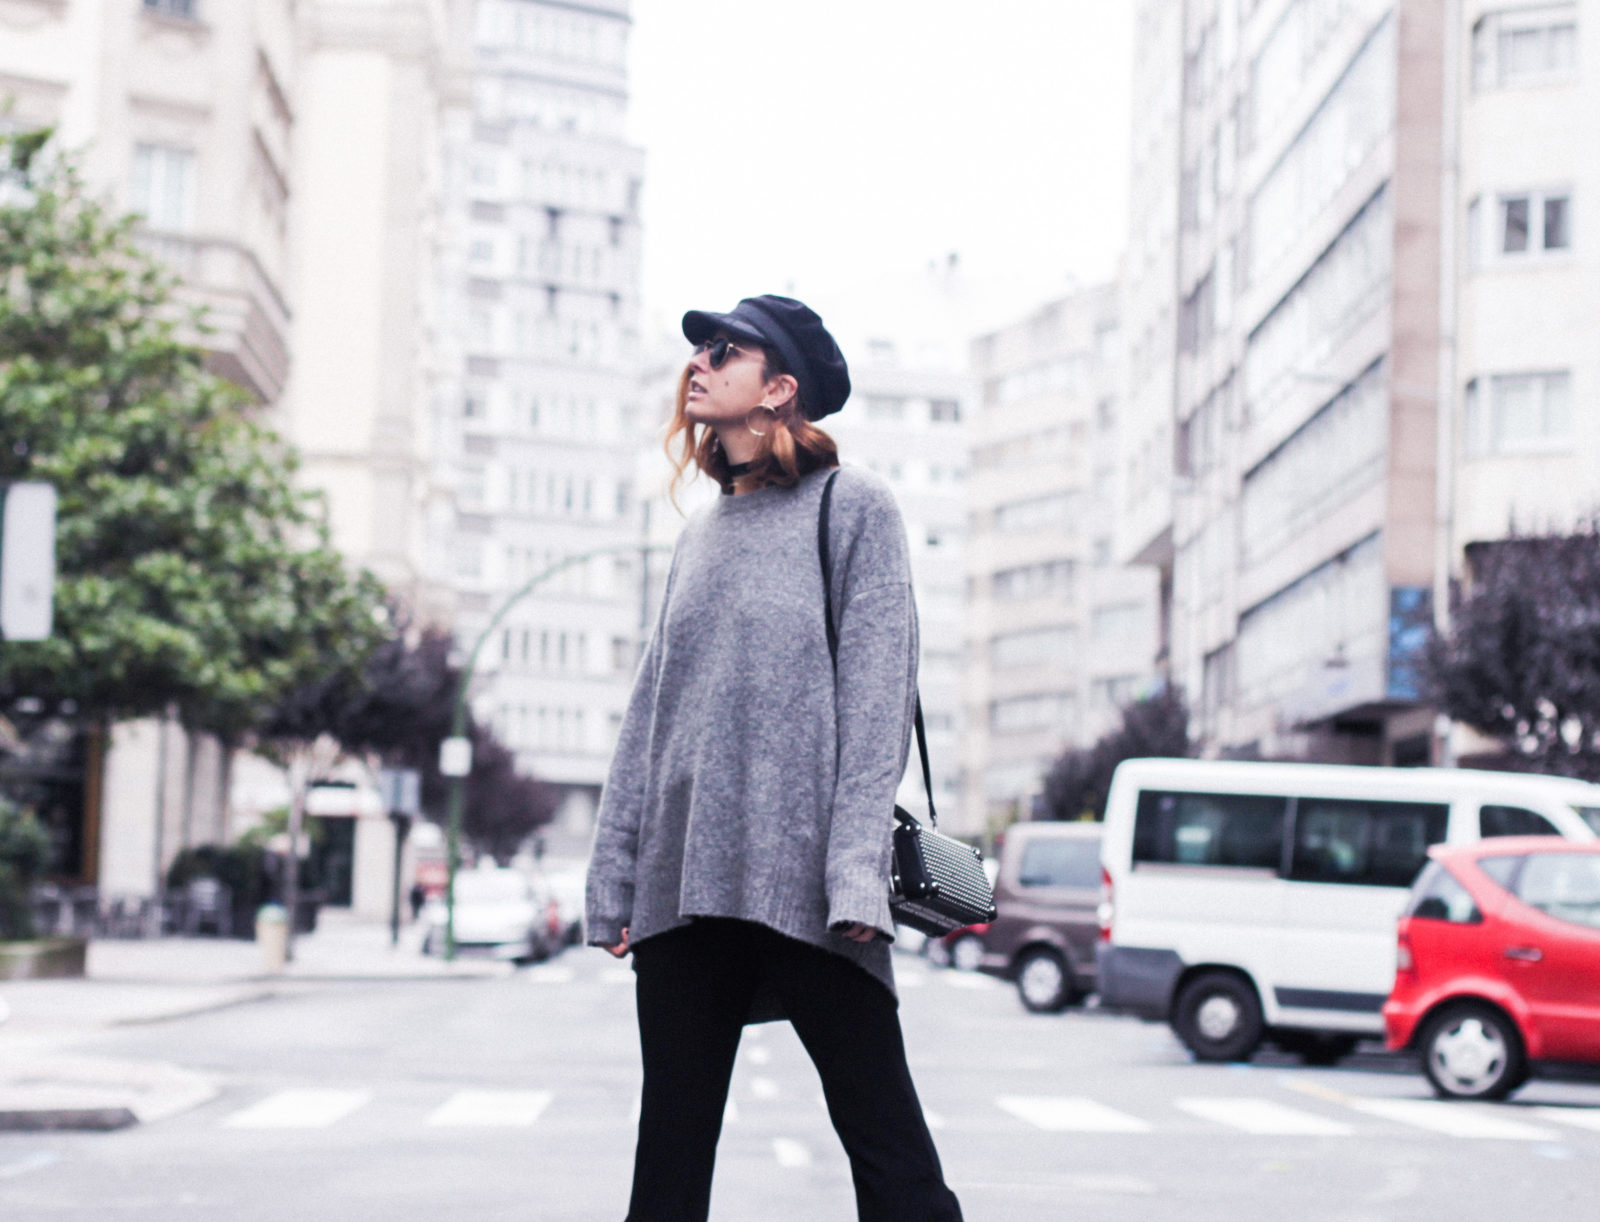 baker_boy_hat_flared_pants_vans_oversize_knit_fall_2016_trends_street_style_outfits_donkeycool-18